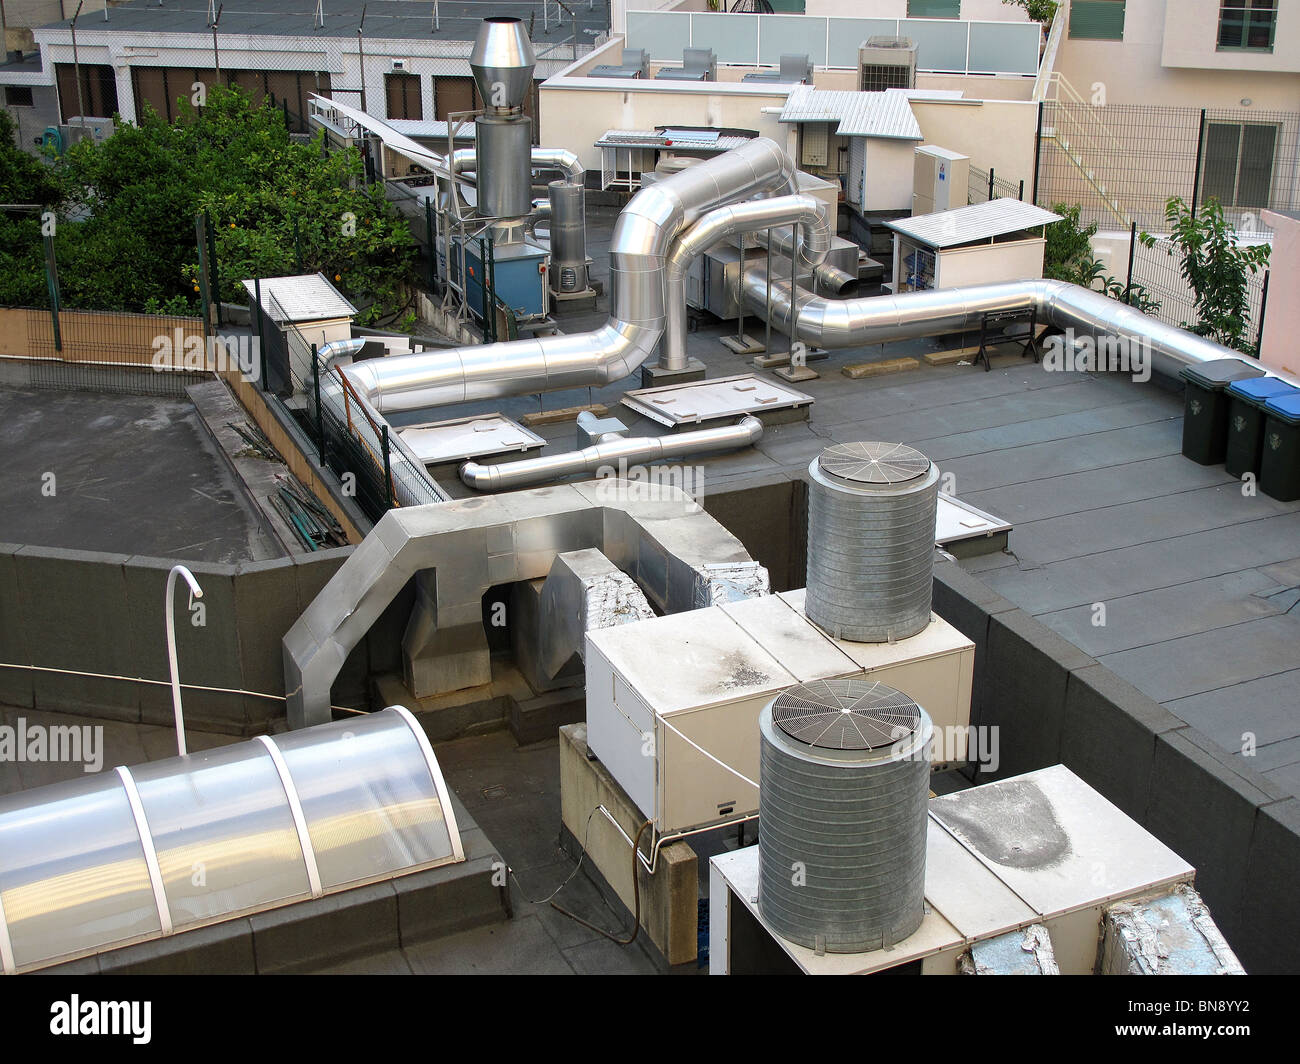 Rooftop Units Duct : Rooftop hvac air handling units in lisbon portugal stock